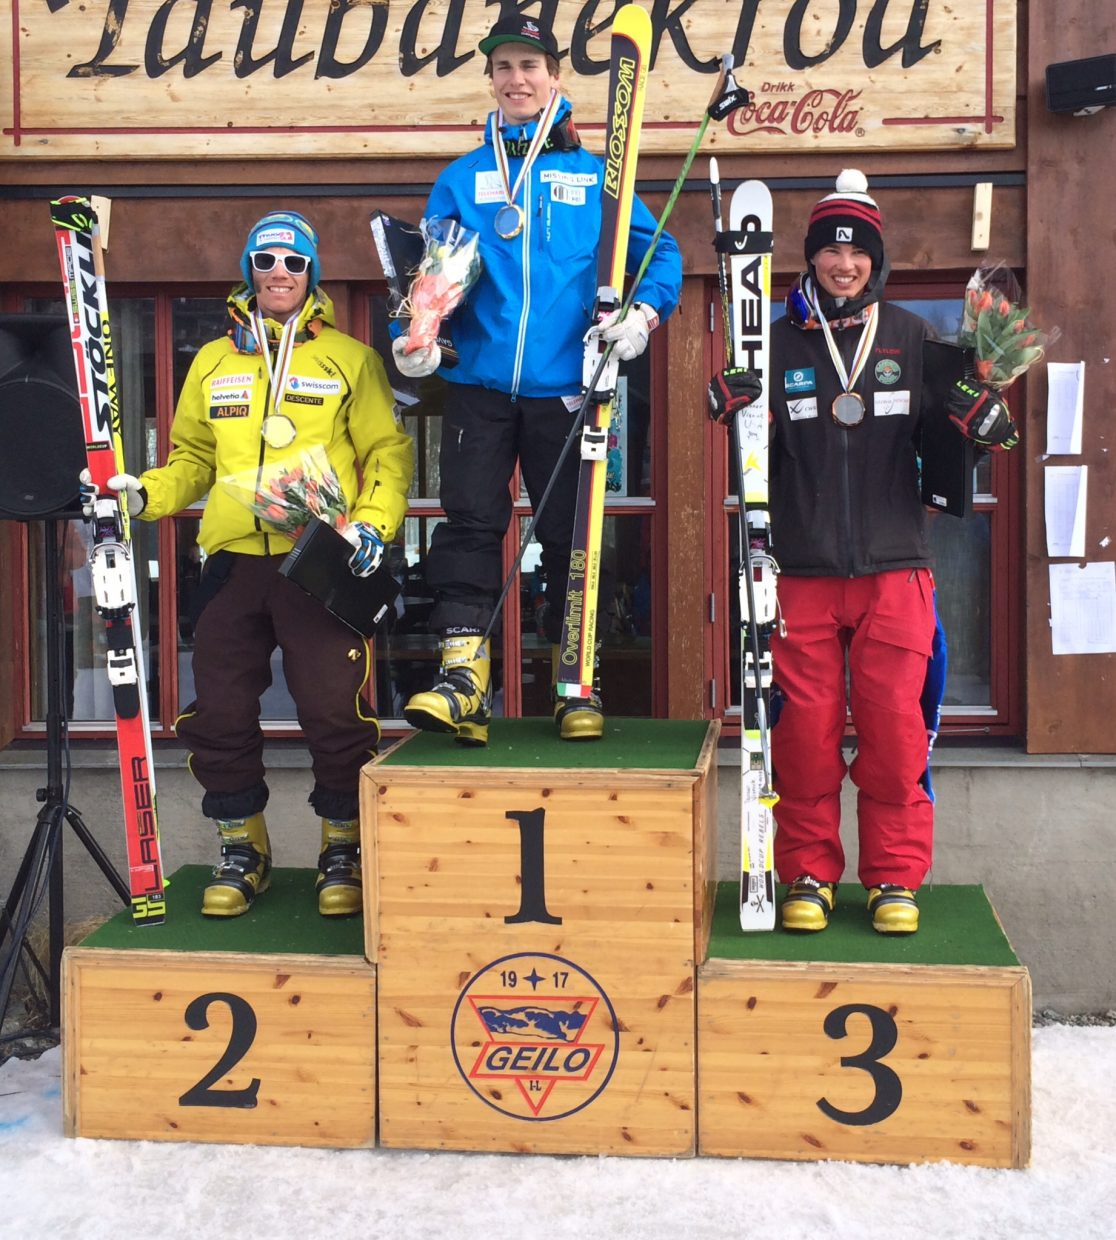 Steamboat Springs skier Tanner Visnick placed third at the FIS Telemark World Junior Championships in Geilo, Norway.